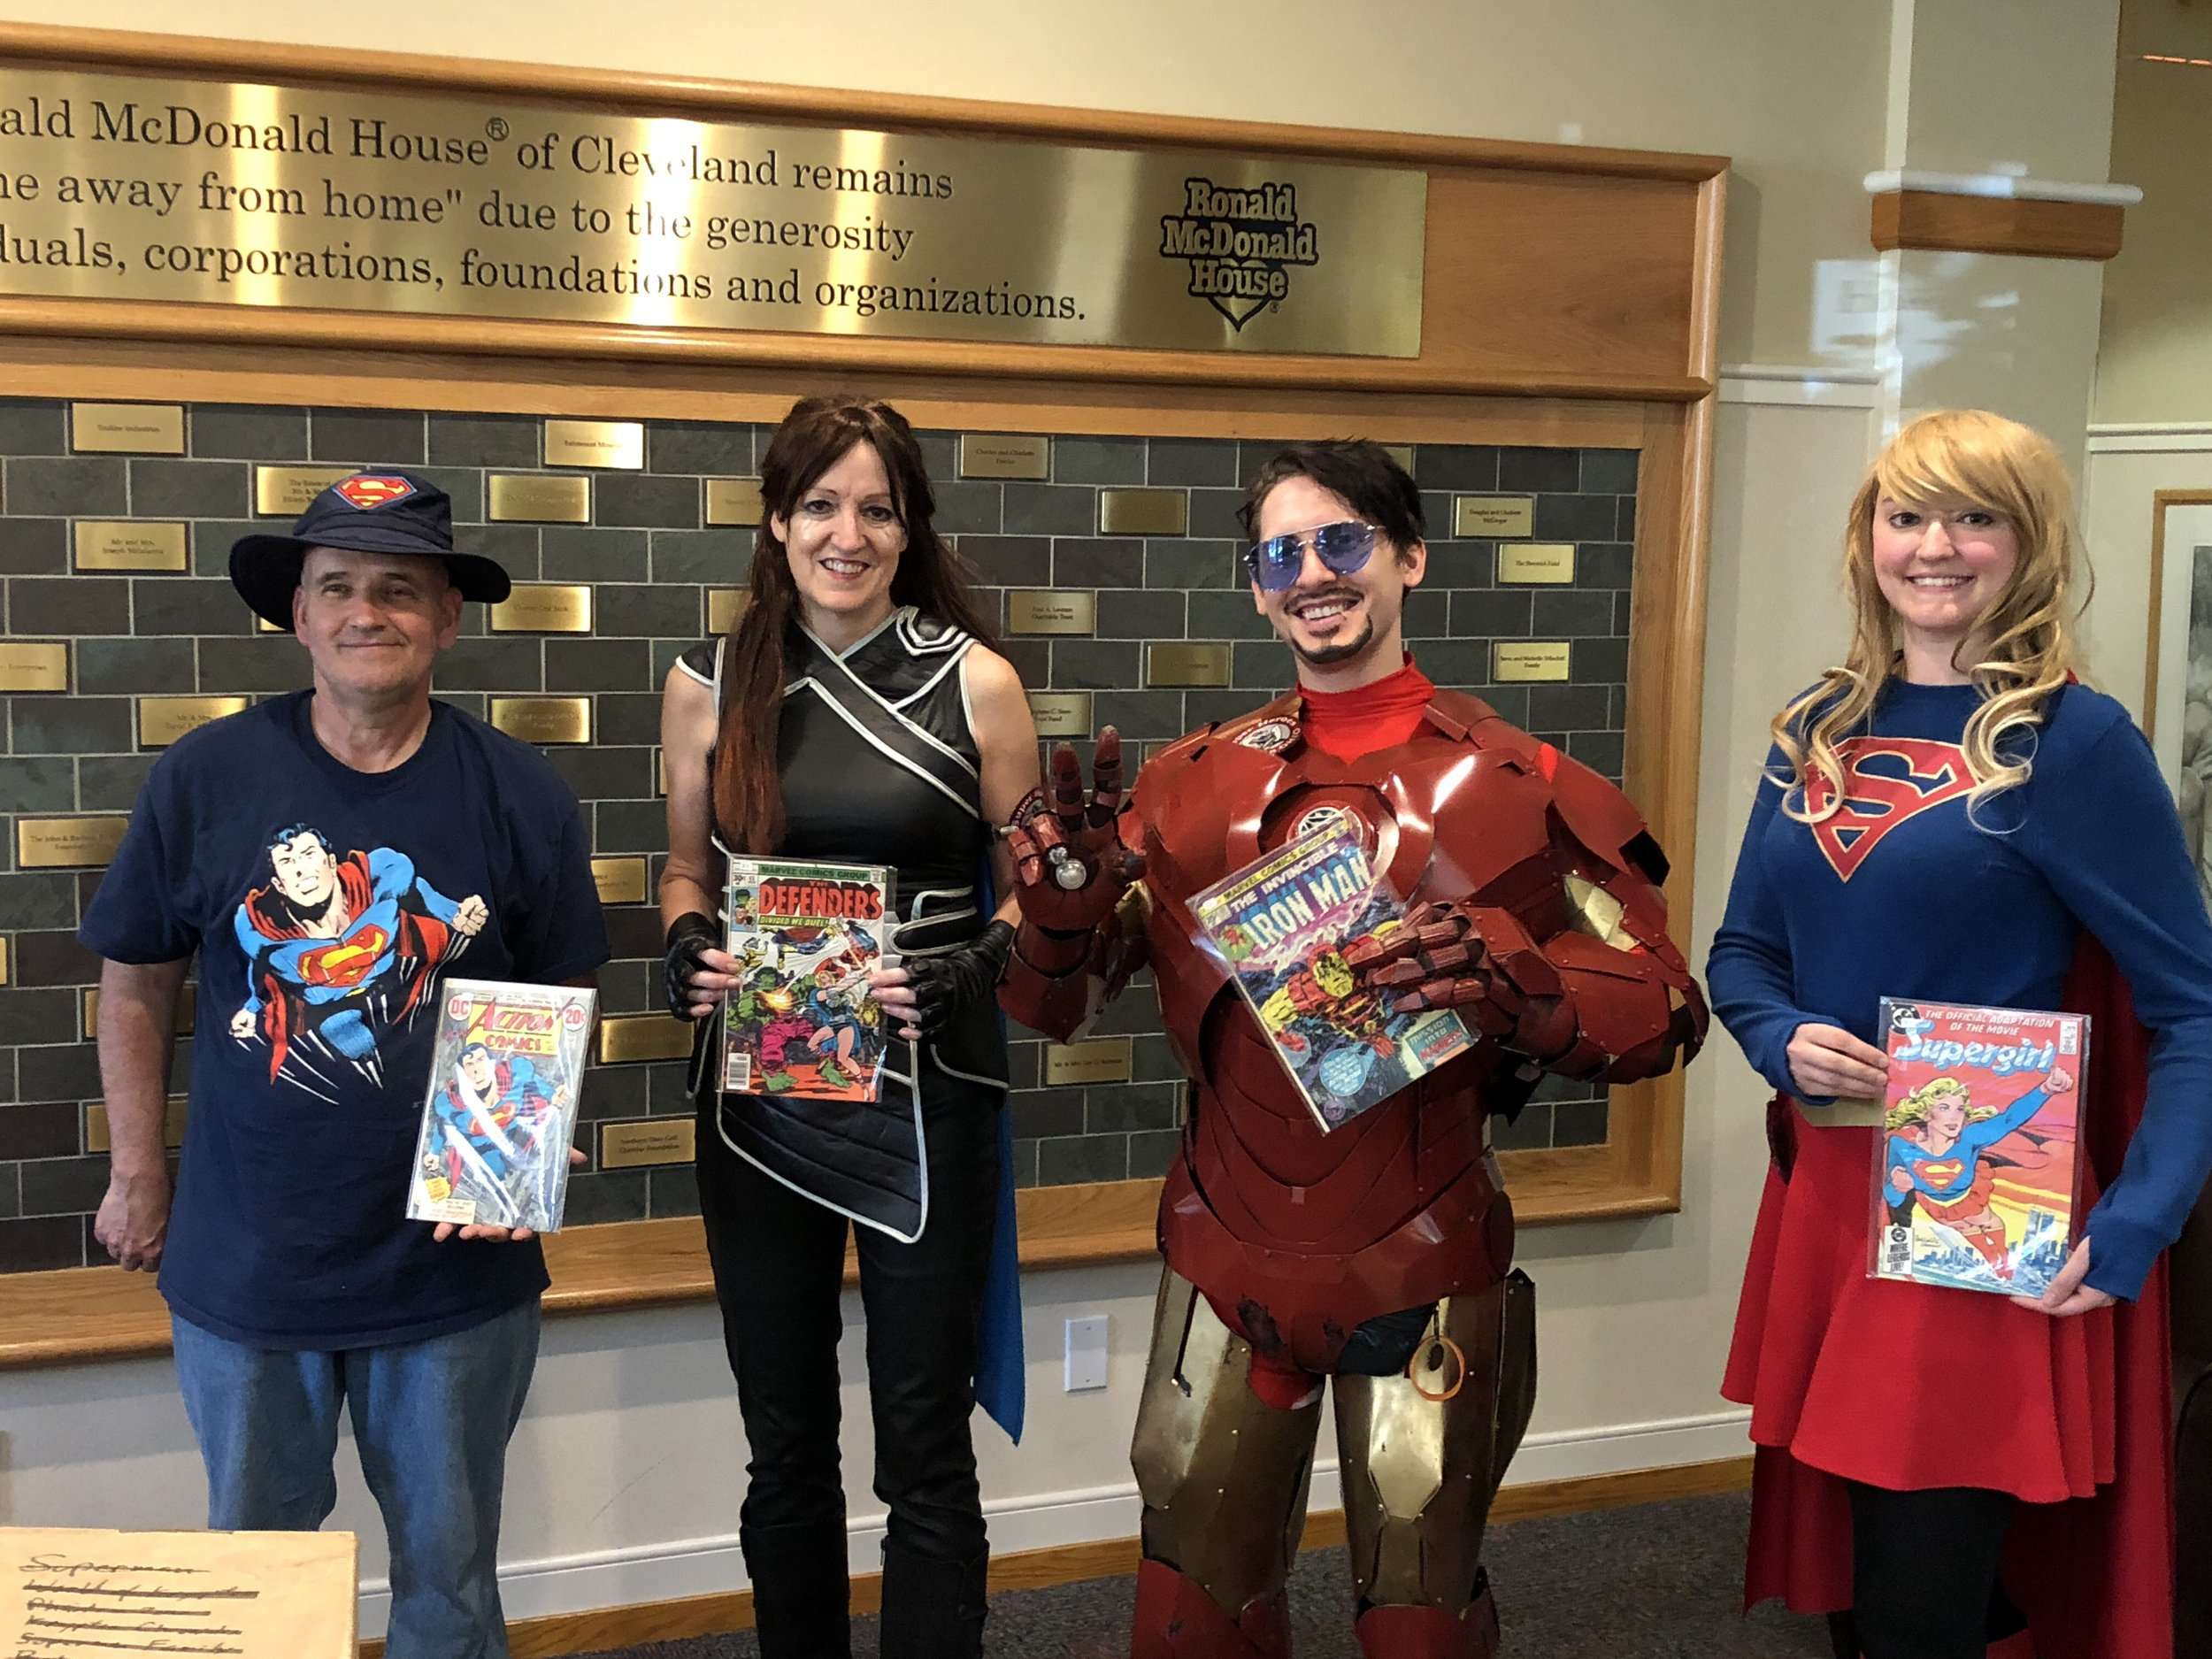 Bob Watson donates comic books to RMH and meets Super Heroes to Kids in Ohio